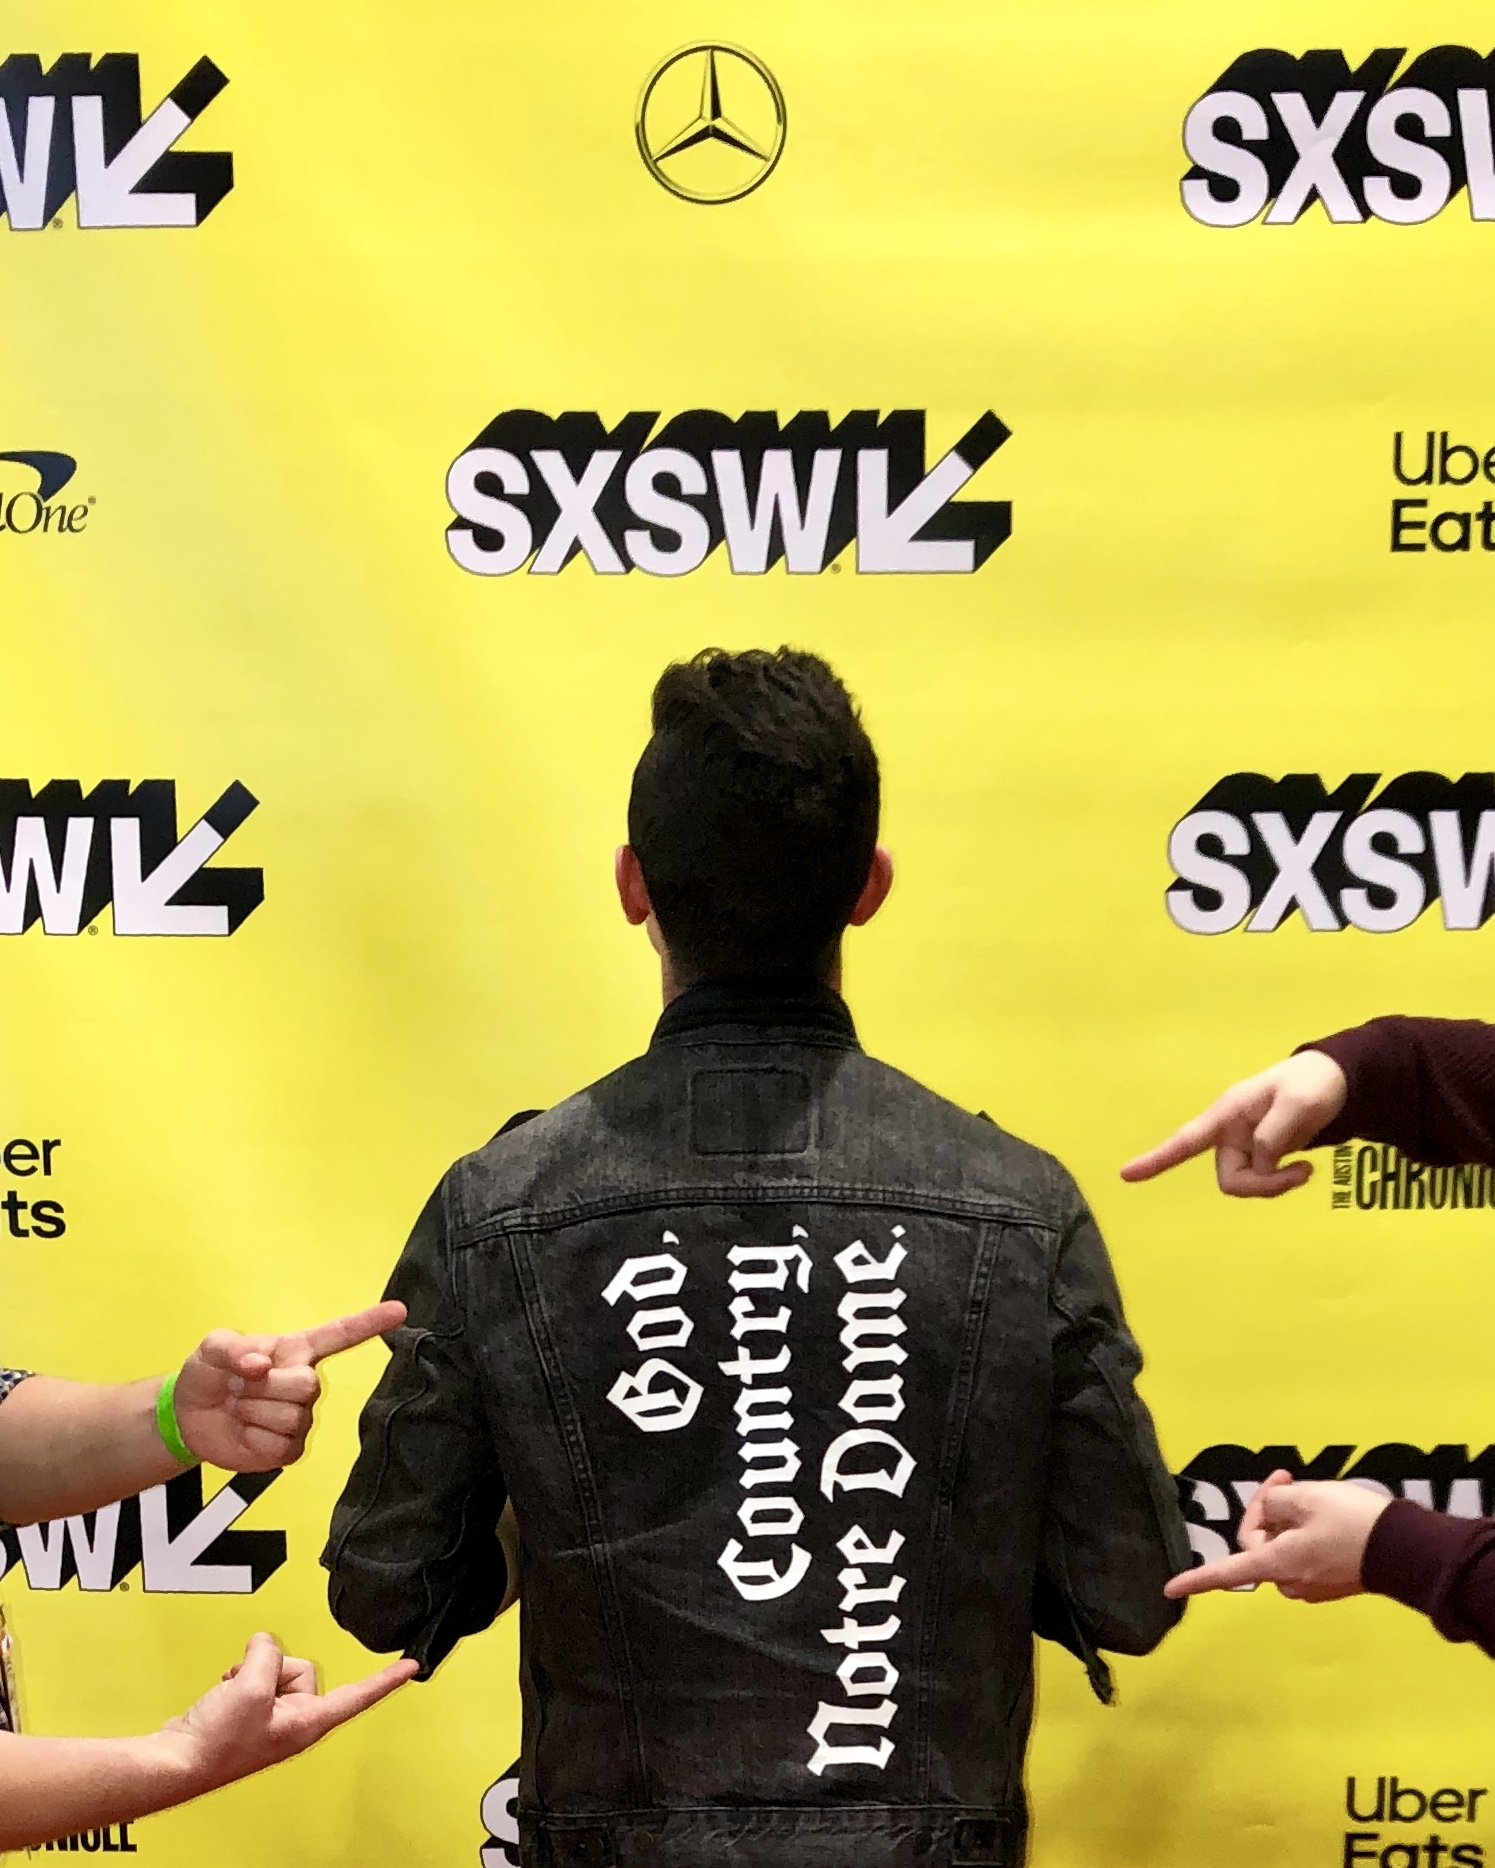 fingers point to the back of a jacket on a man reading: God. Country. Notre Dame. He stands in front of a SXSW backdrop